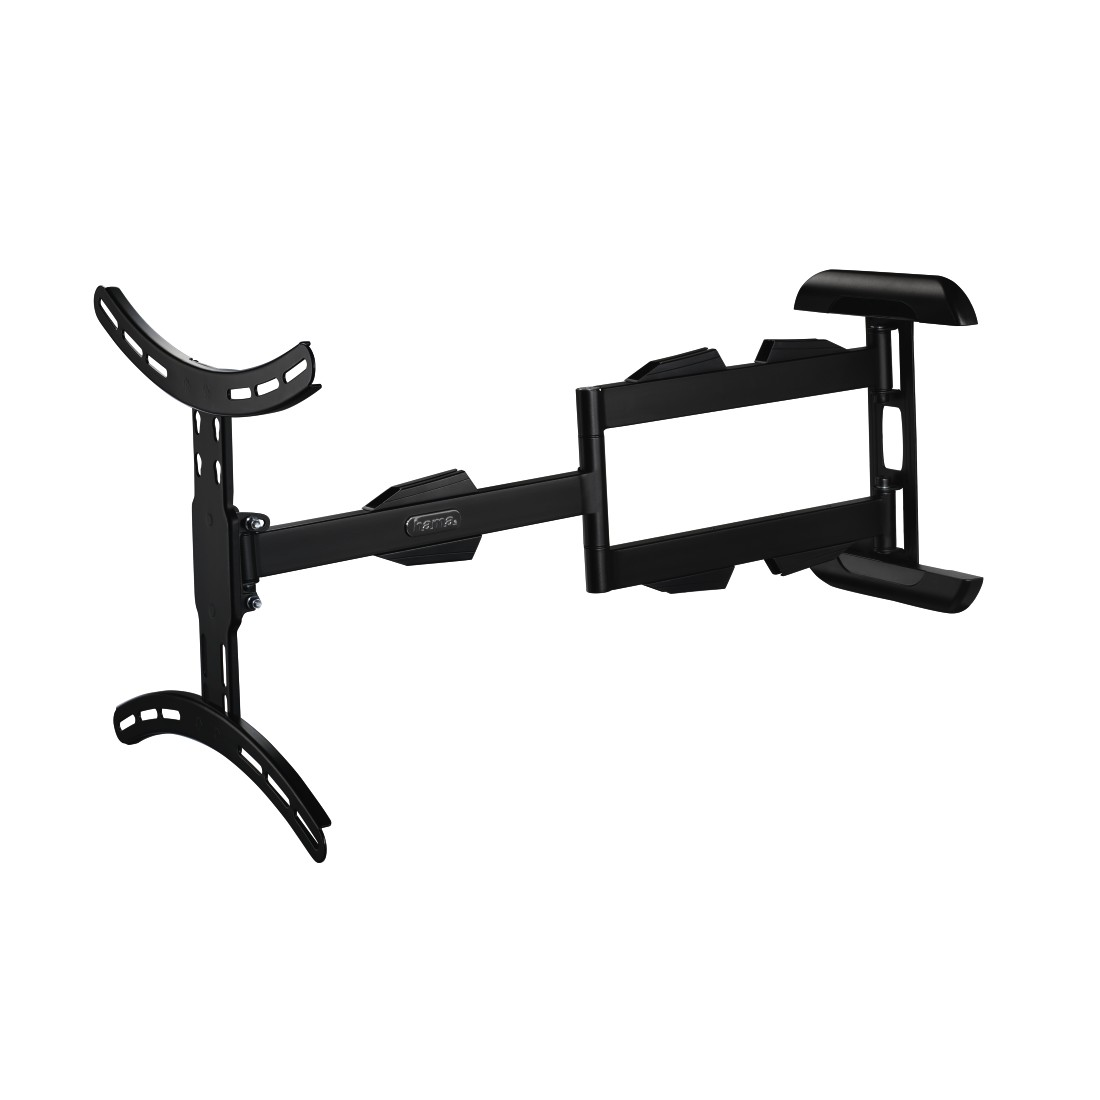 "dex8 High-Res Detail 8 - Hama, FULLMOTION TV Wall Bracket, 3 Stars, 165 cm (65""), 2 arms, ultra-long"